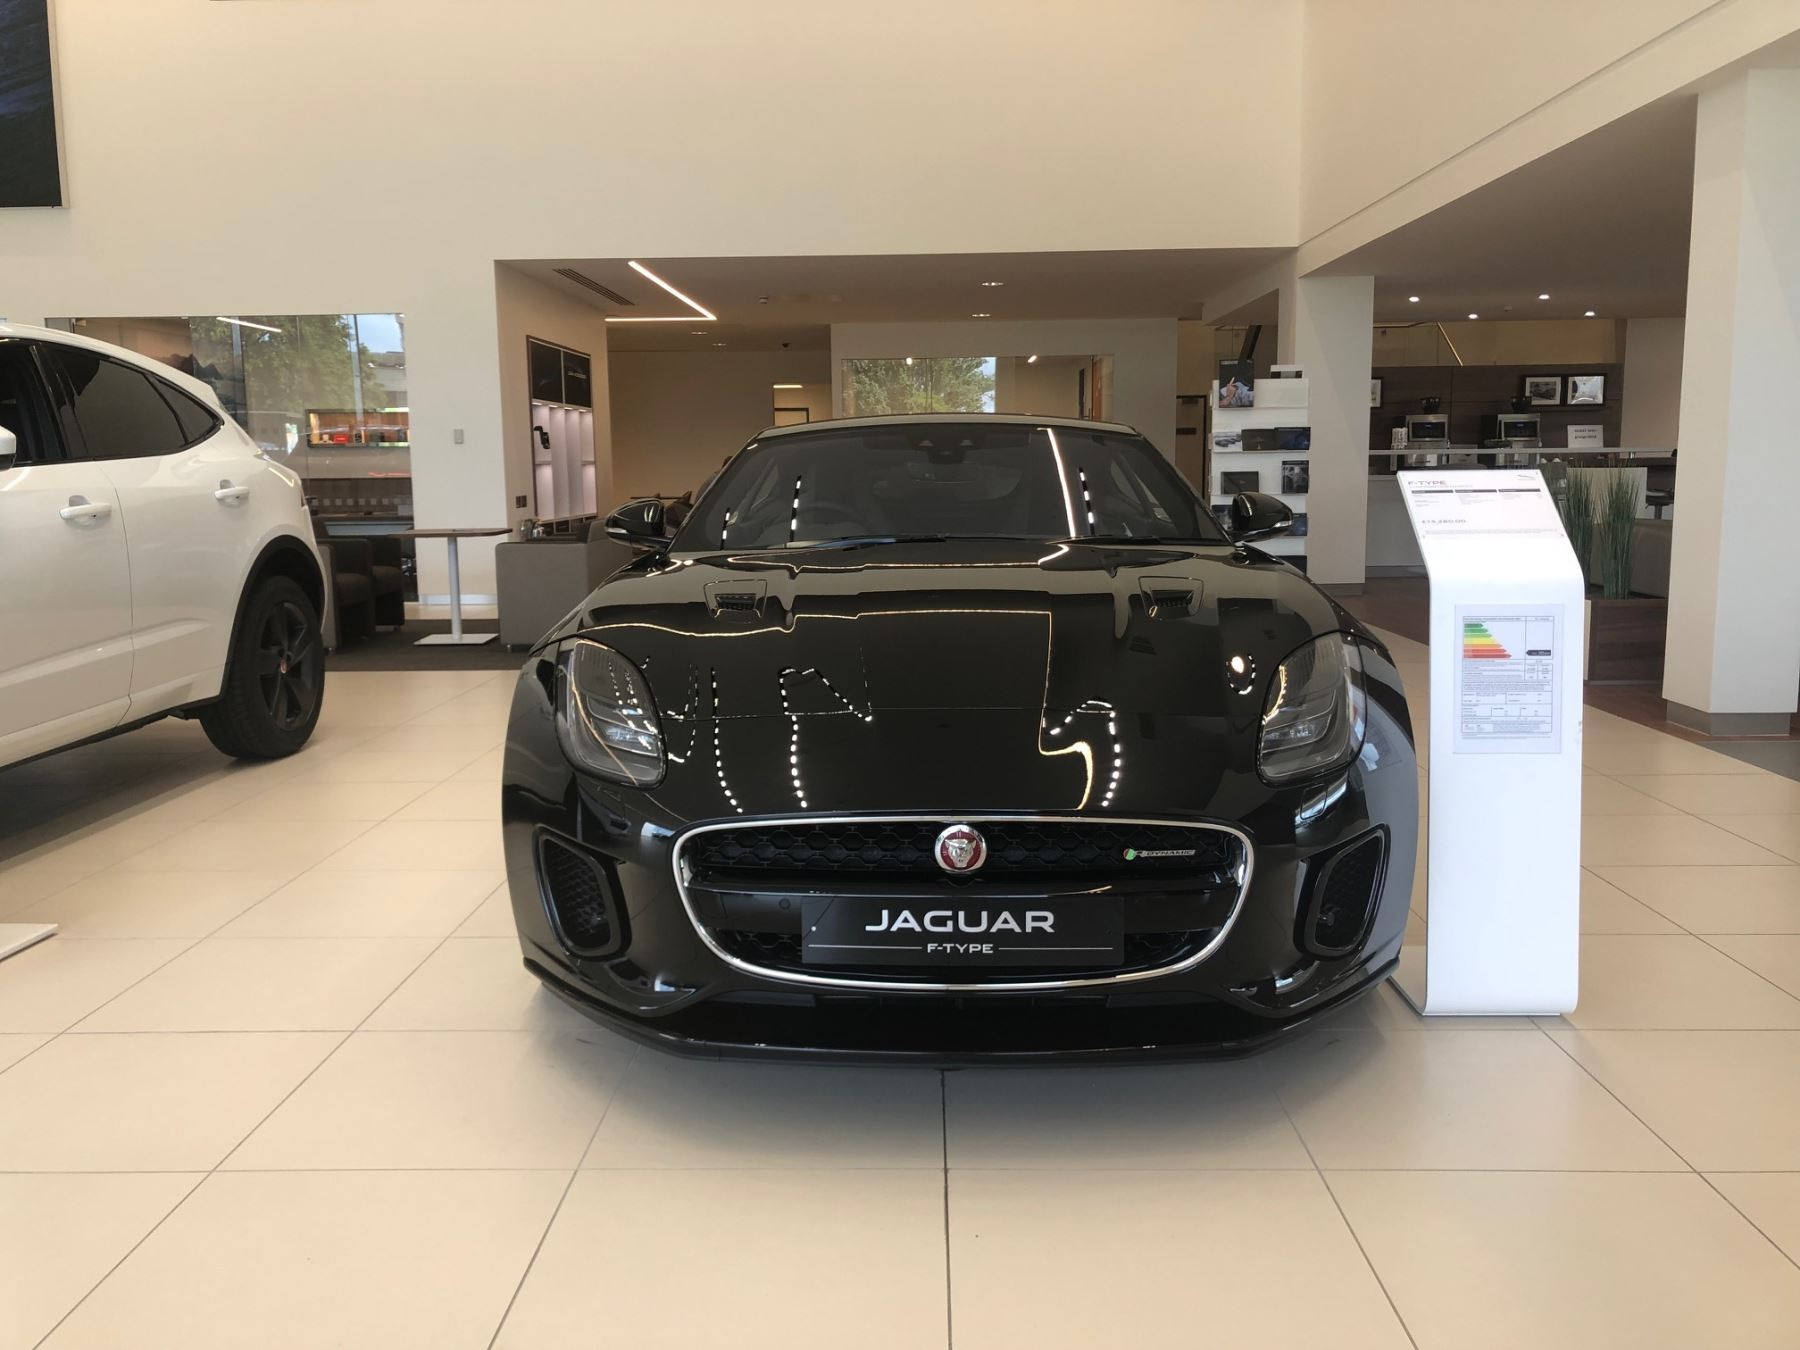 Jaguar F-TYPE 3.0 [380] Supercharged V6 R-Dynamic AWD image 1